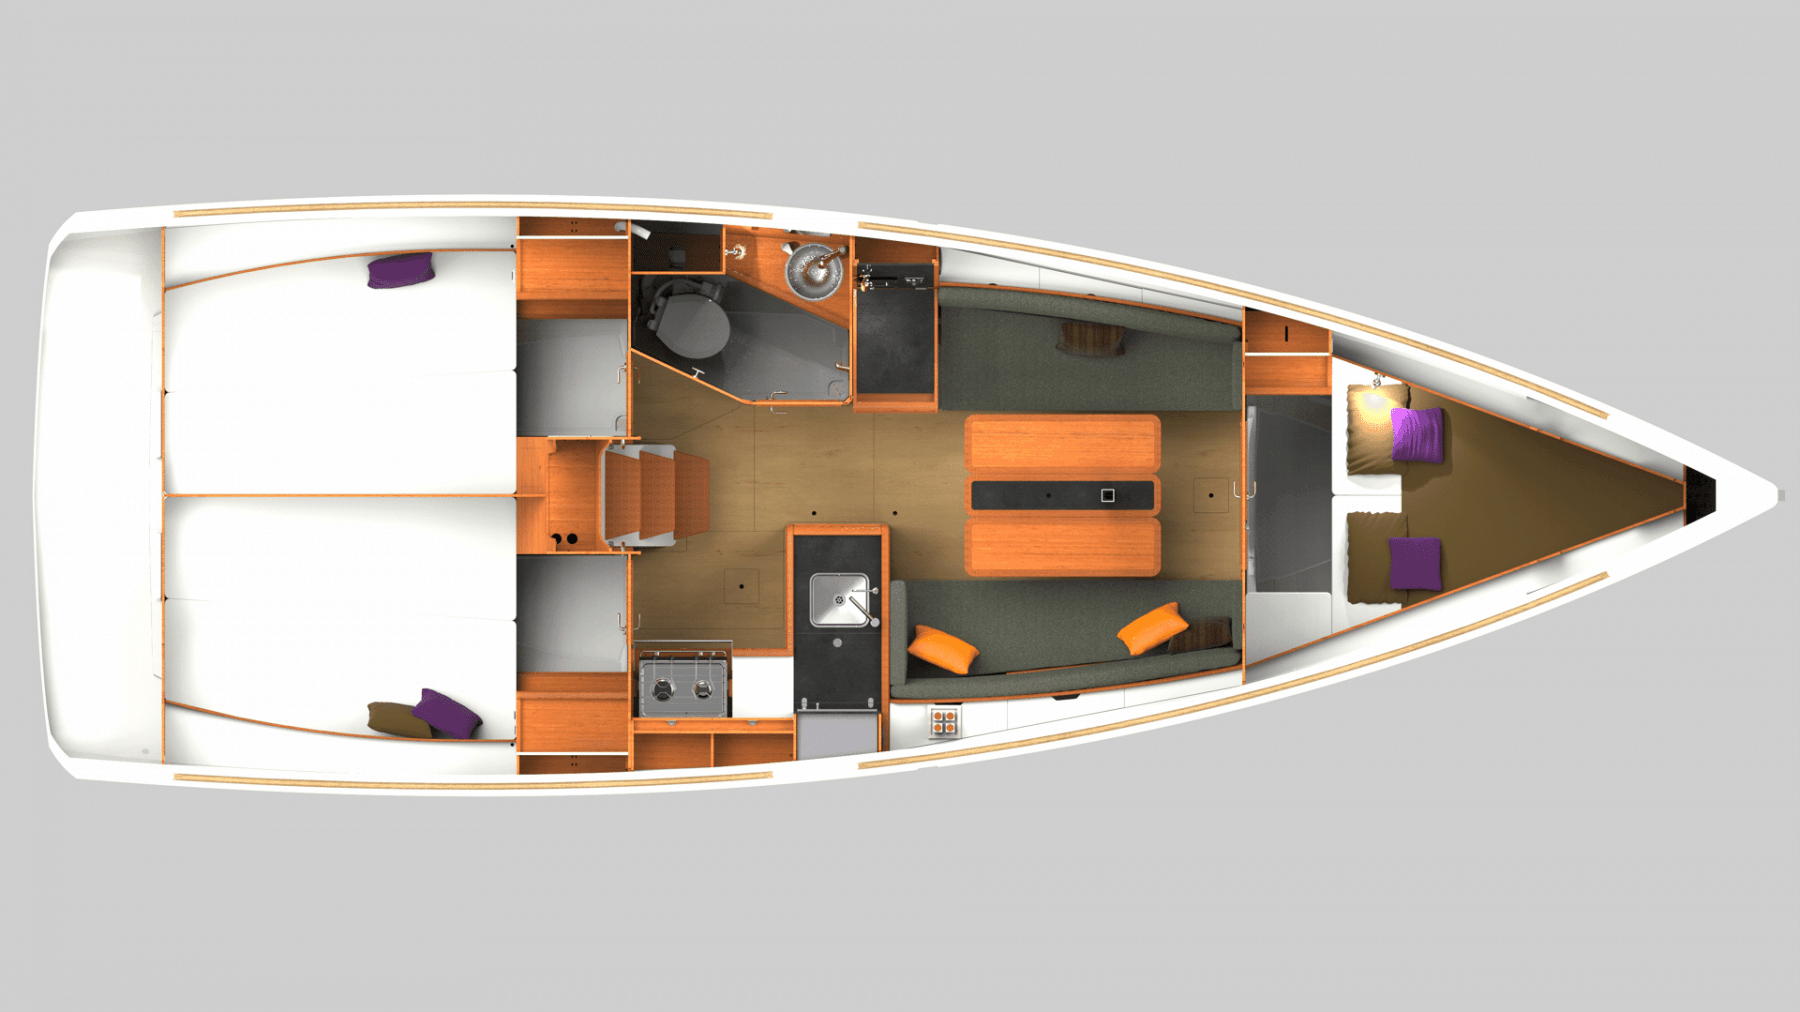 Overview from above showing the interior layout of the Jeanneau Sun Odyssey 349